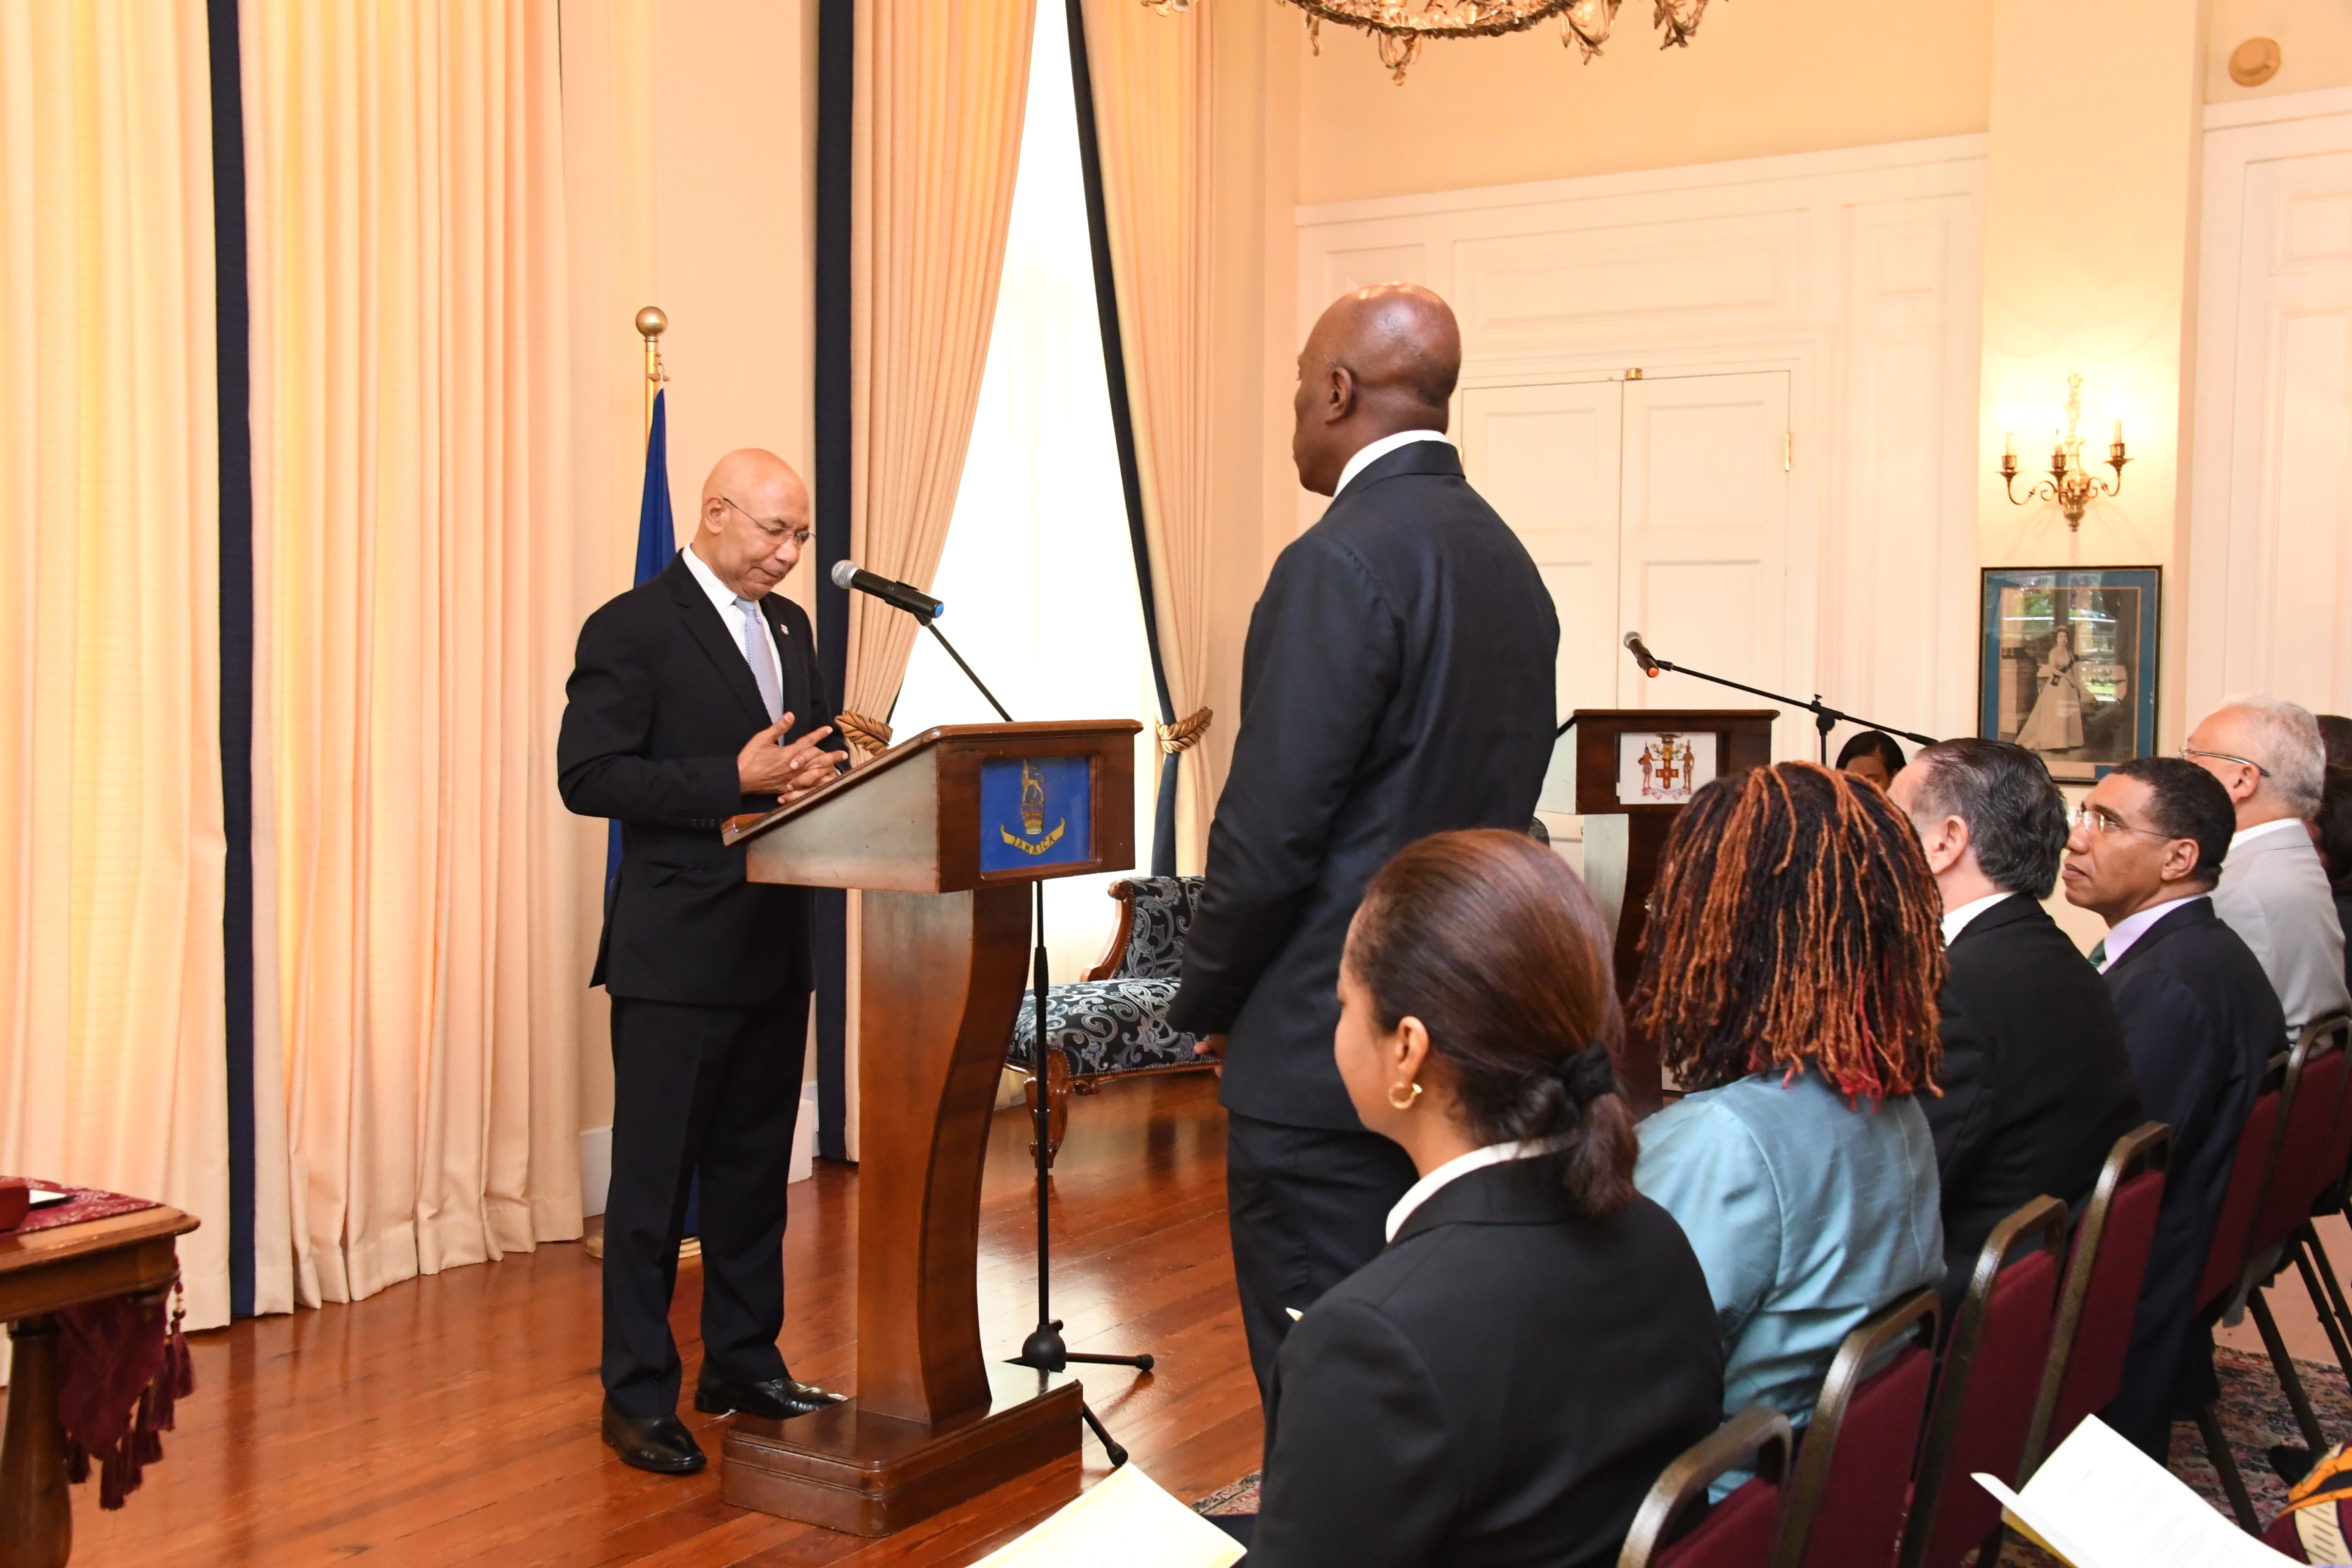 His Excellency The Governor-General reads the Instrument of Appointment for the Honourable Mr. Justice Bryan Sykes as Acting Chief Justice of Jamaica.